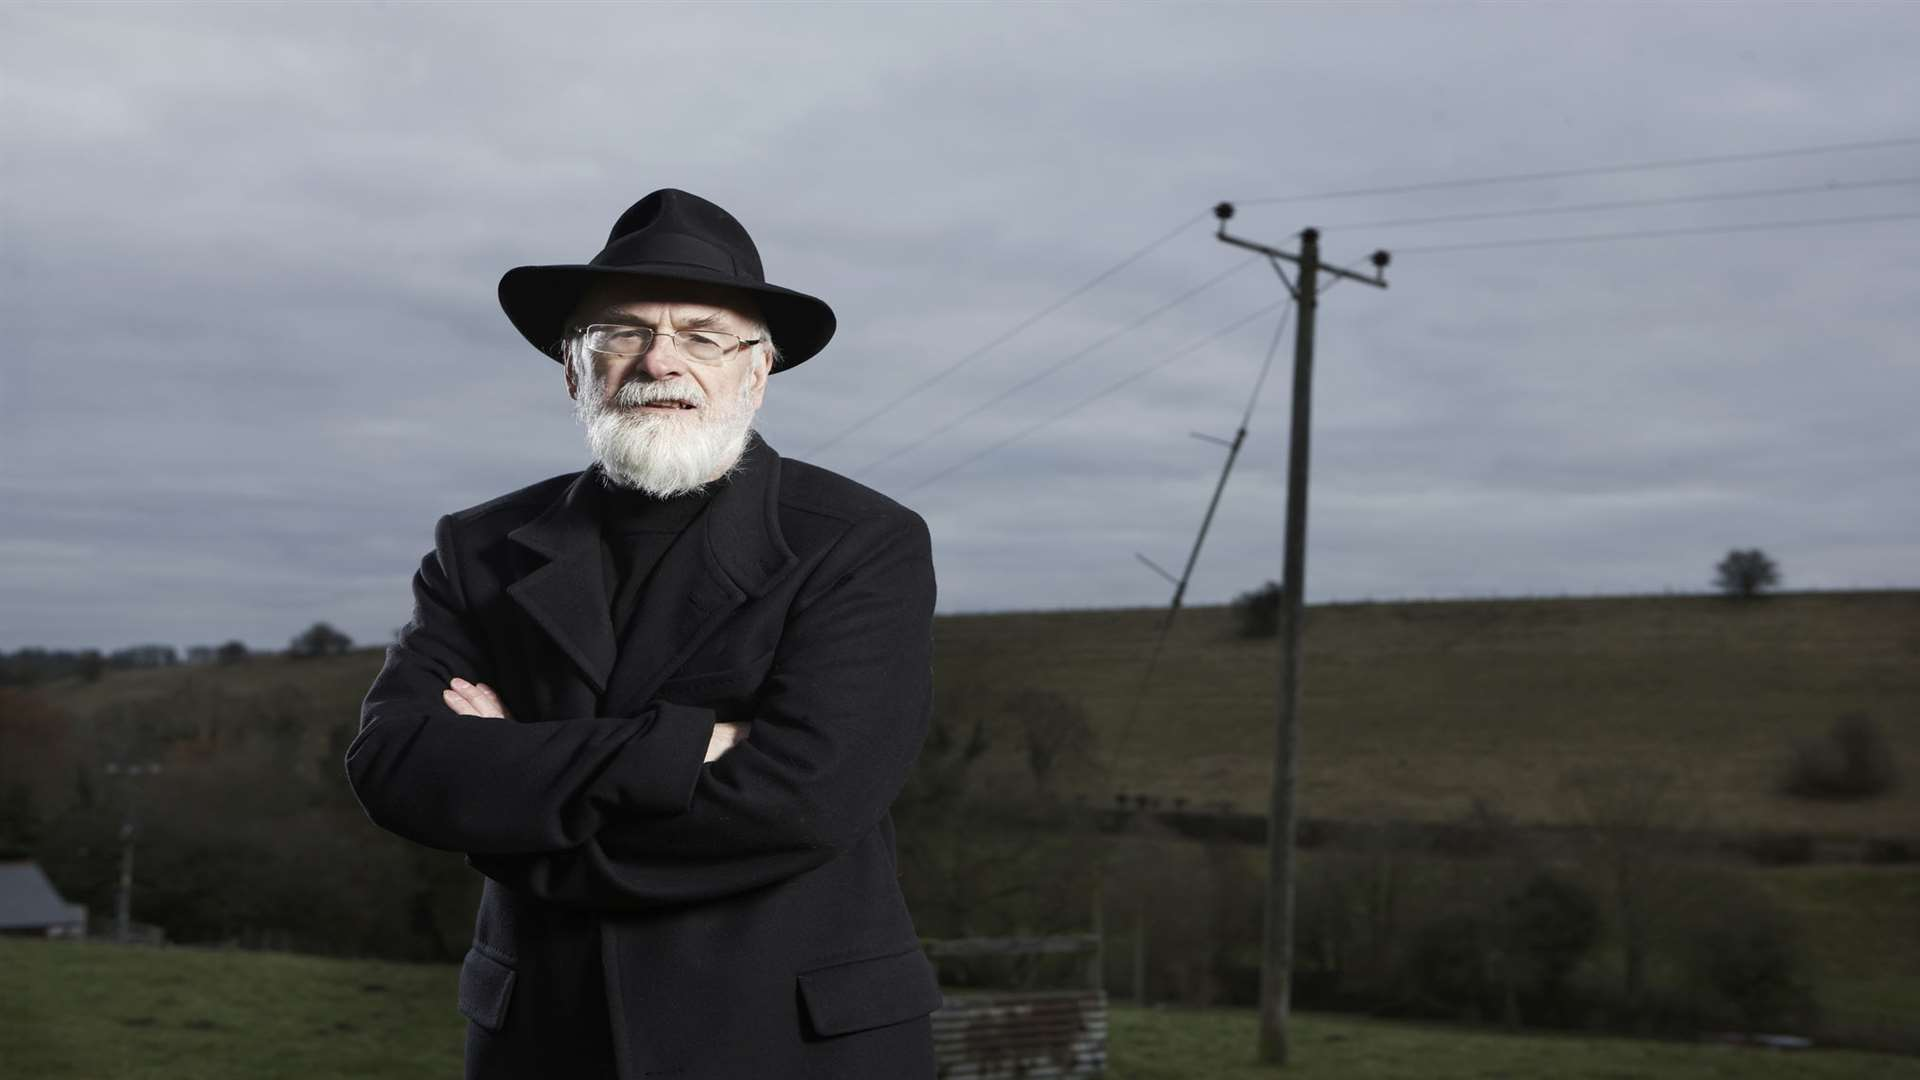 Terry Pratchett's Discworld series have inspired the festival's events